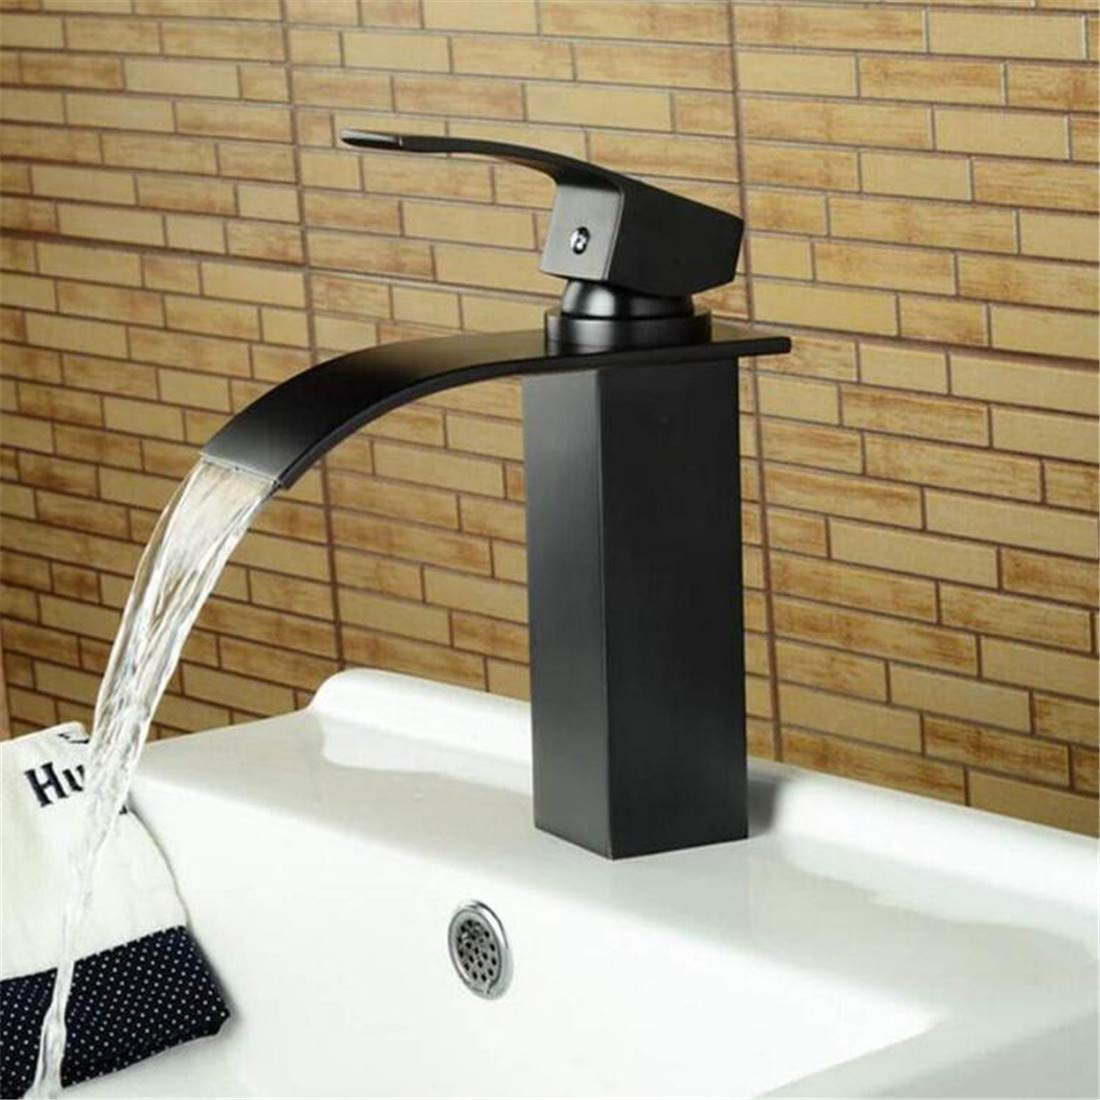 Faucet Vintage Plated Luxury Plating Faucet Faucet Washbasin Mixer Square Waterfall Faucet Bath Hot and Cold Washbasin Mixer Taps